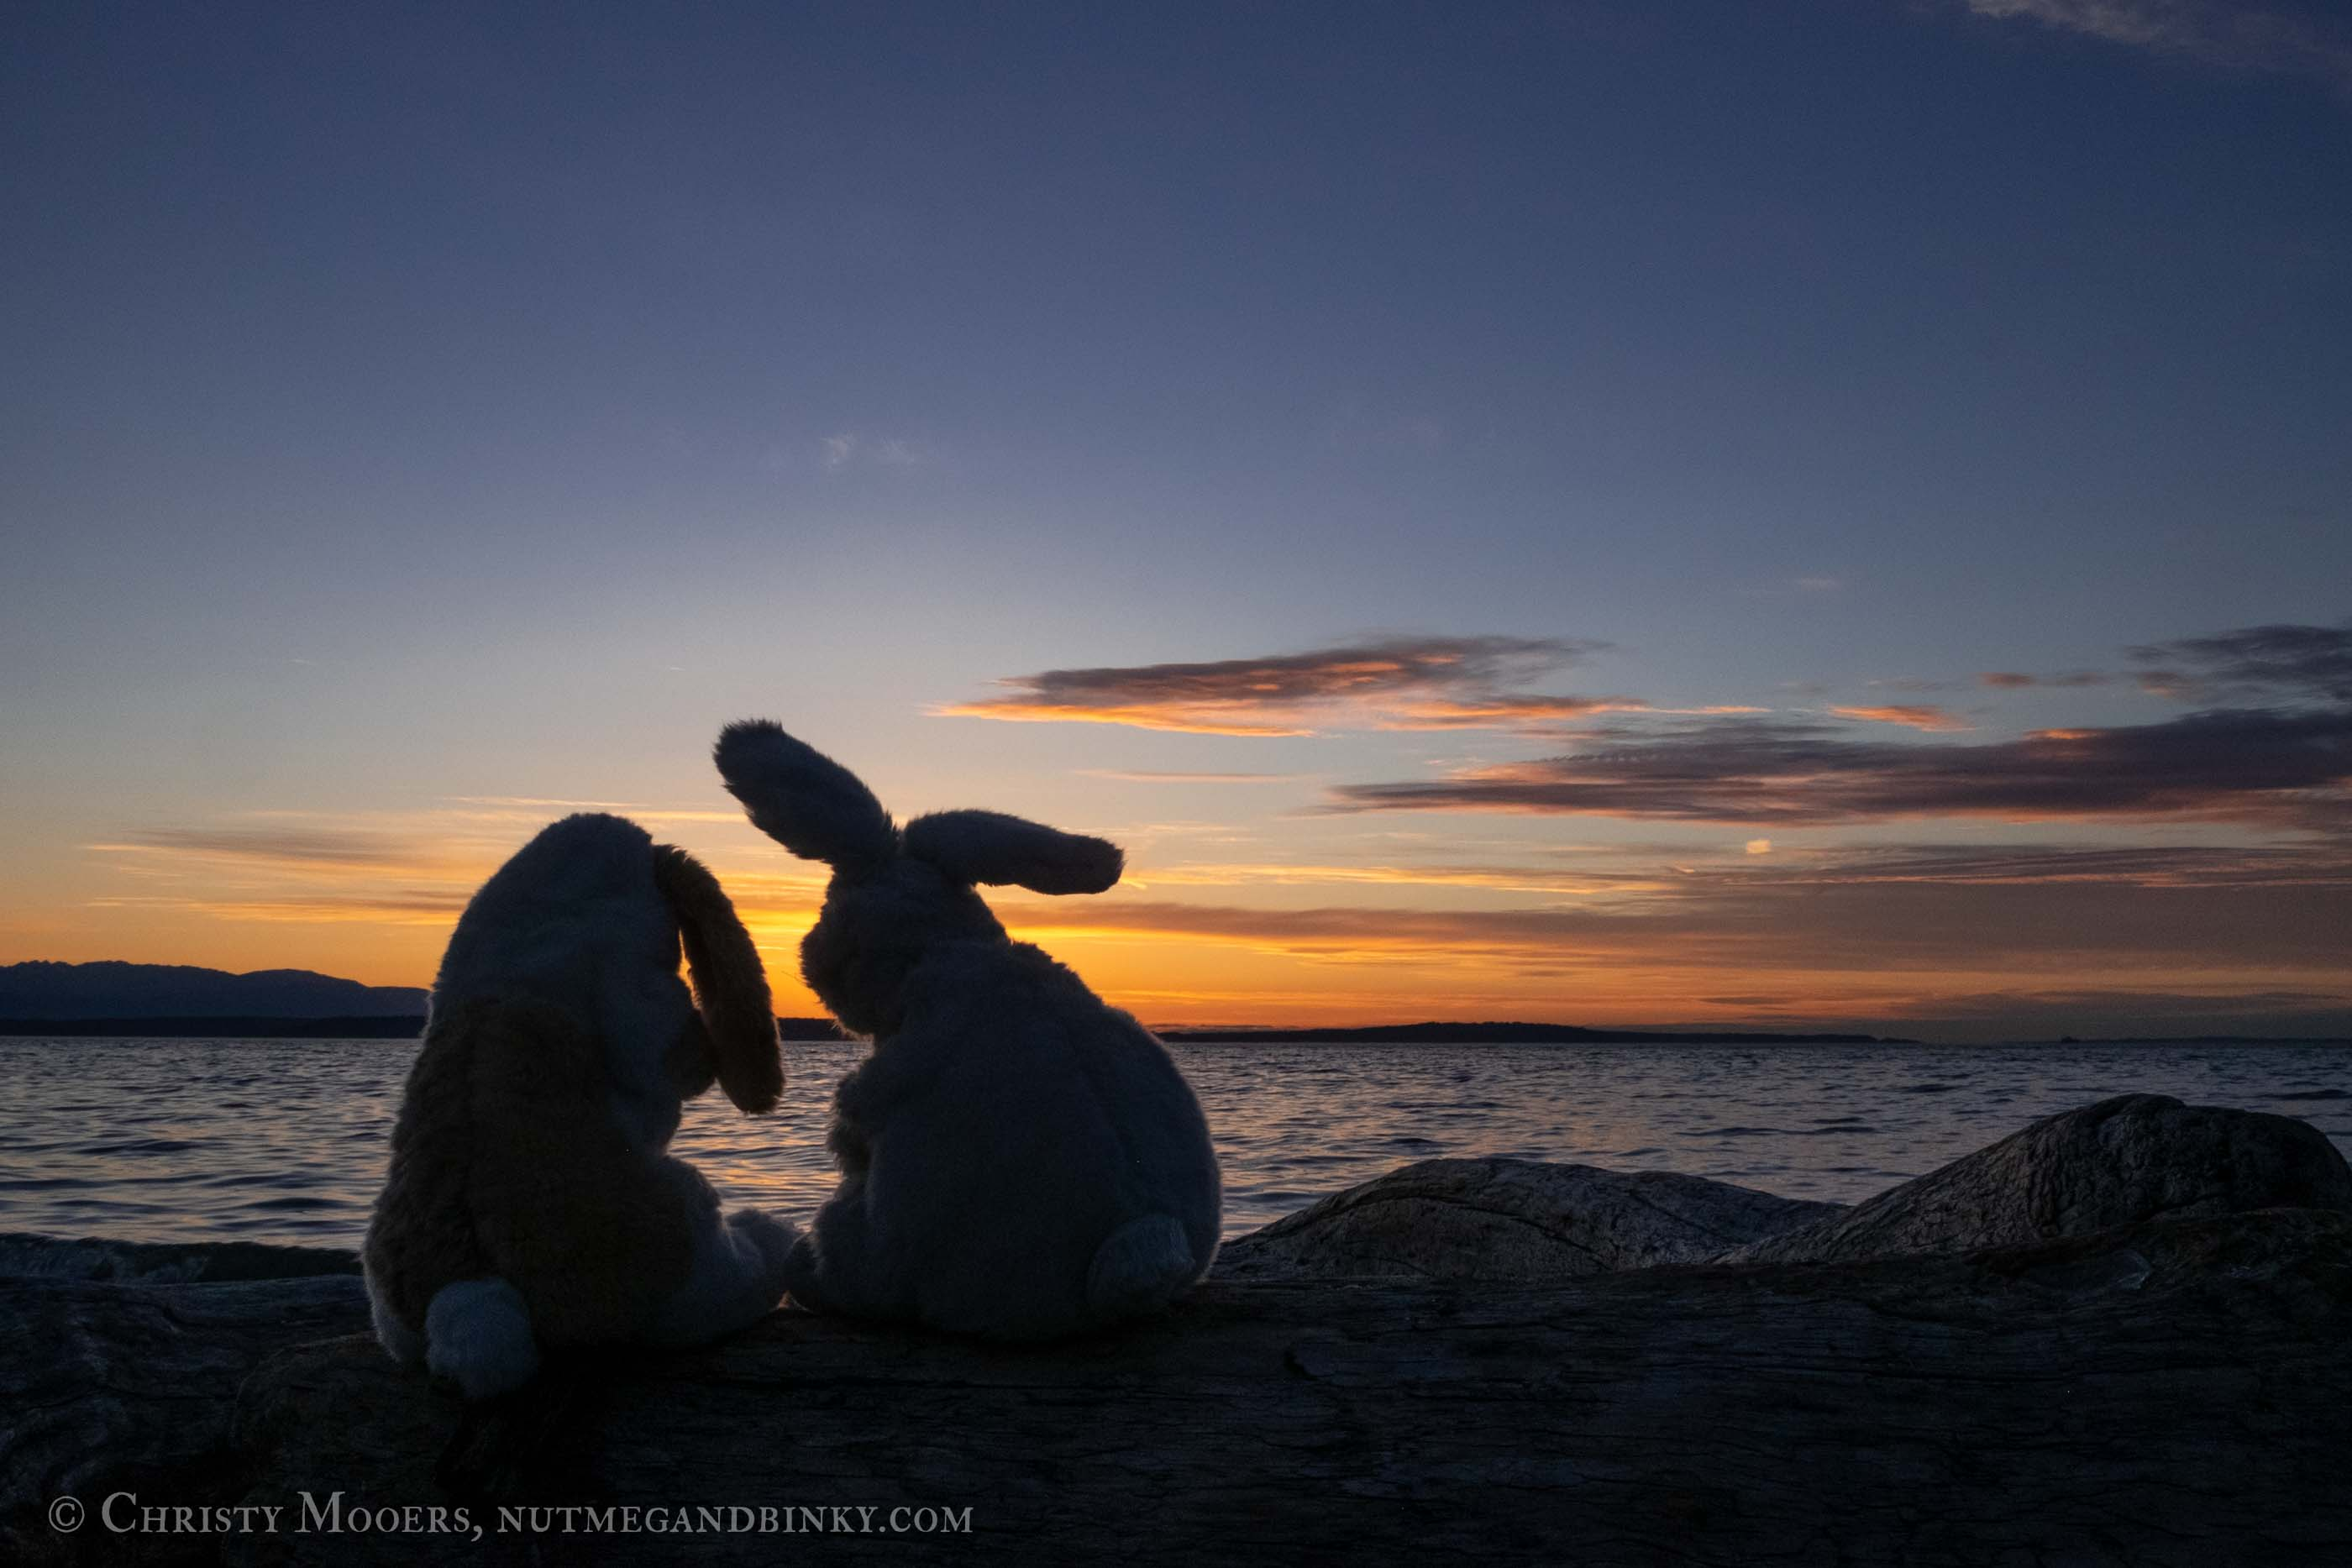 Plush bunnies silhouetted on a log watching the sun set over the ocean